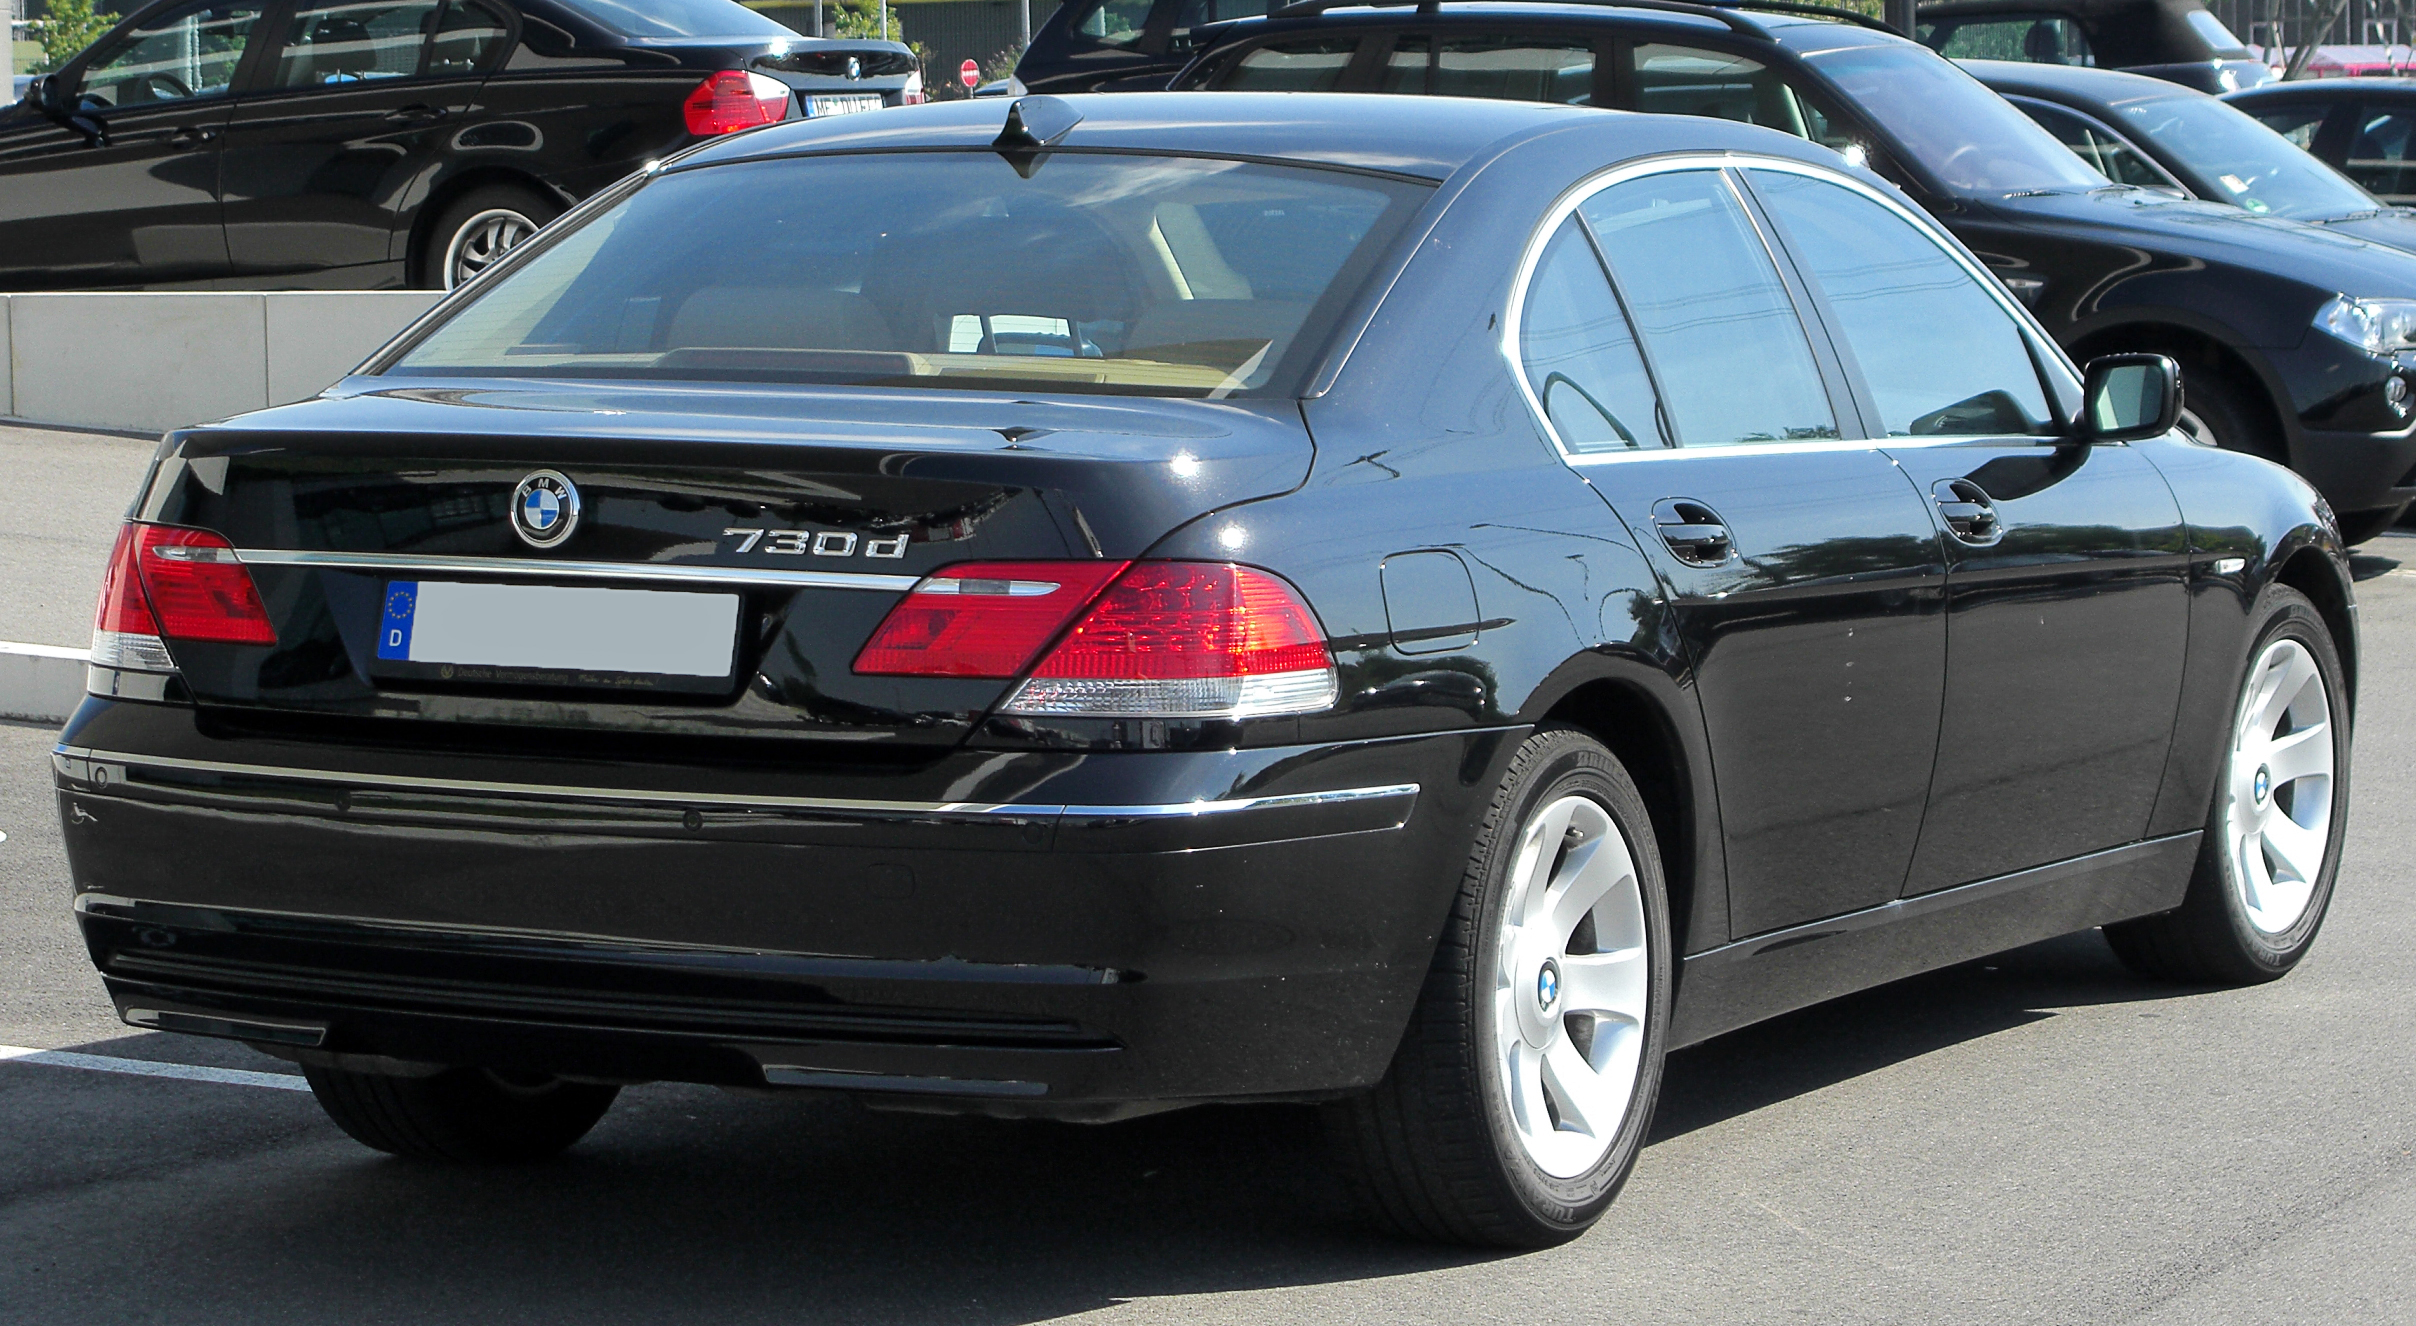 File:BMW 730d (E65) Facelift rear 20100718.jpg - Wikimedia Commons